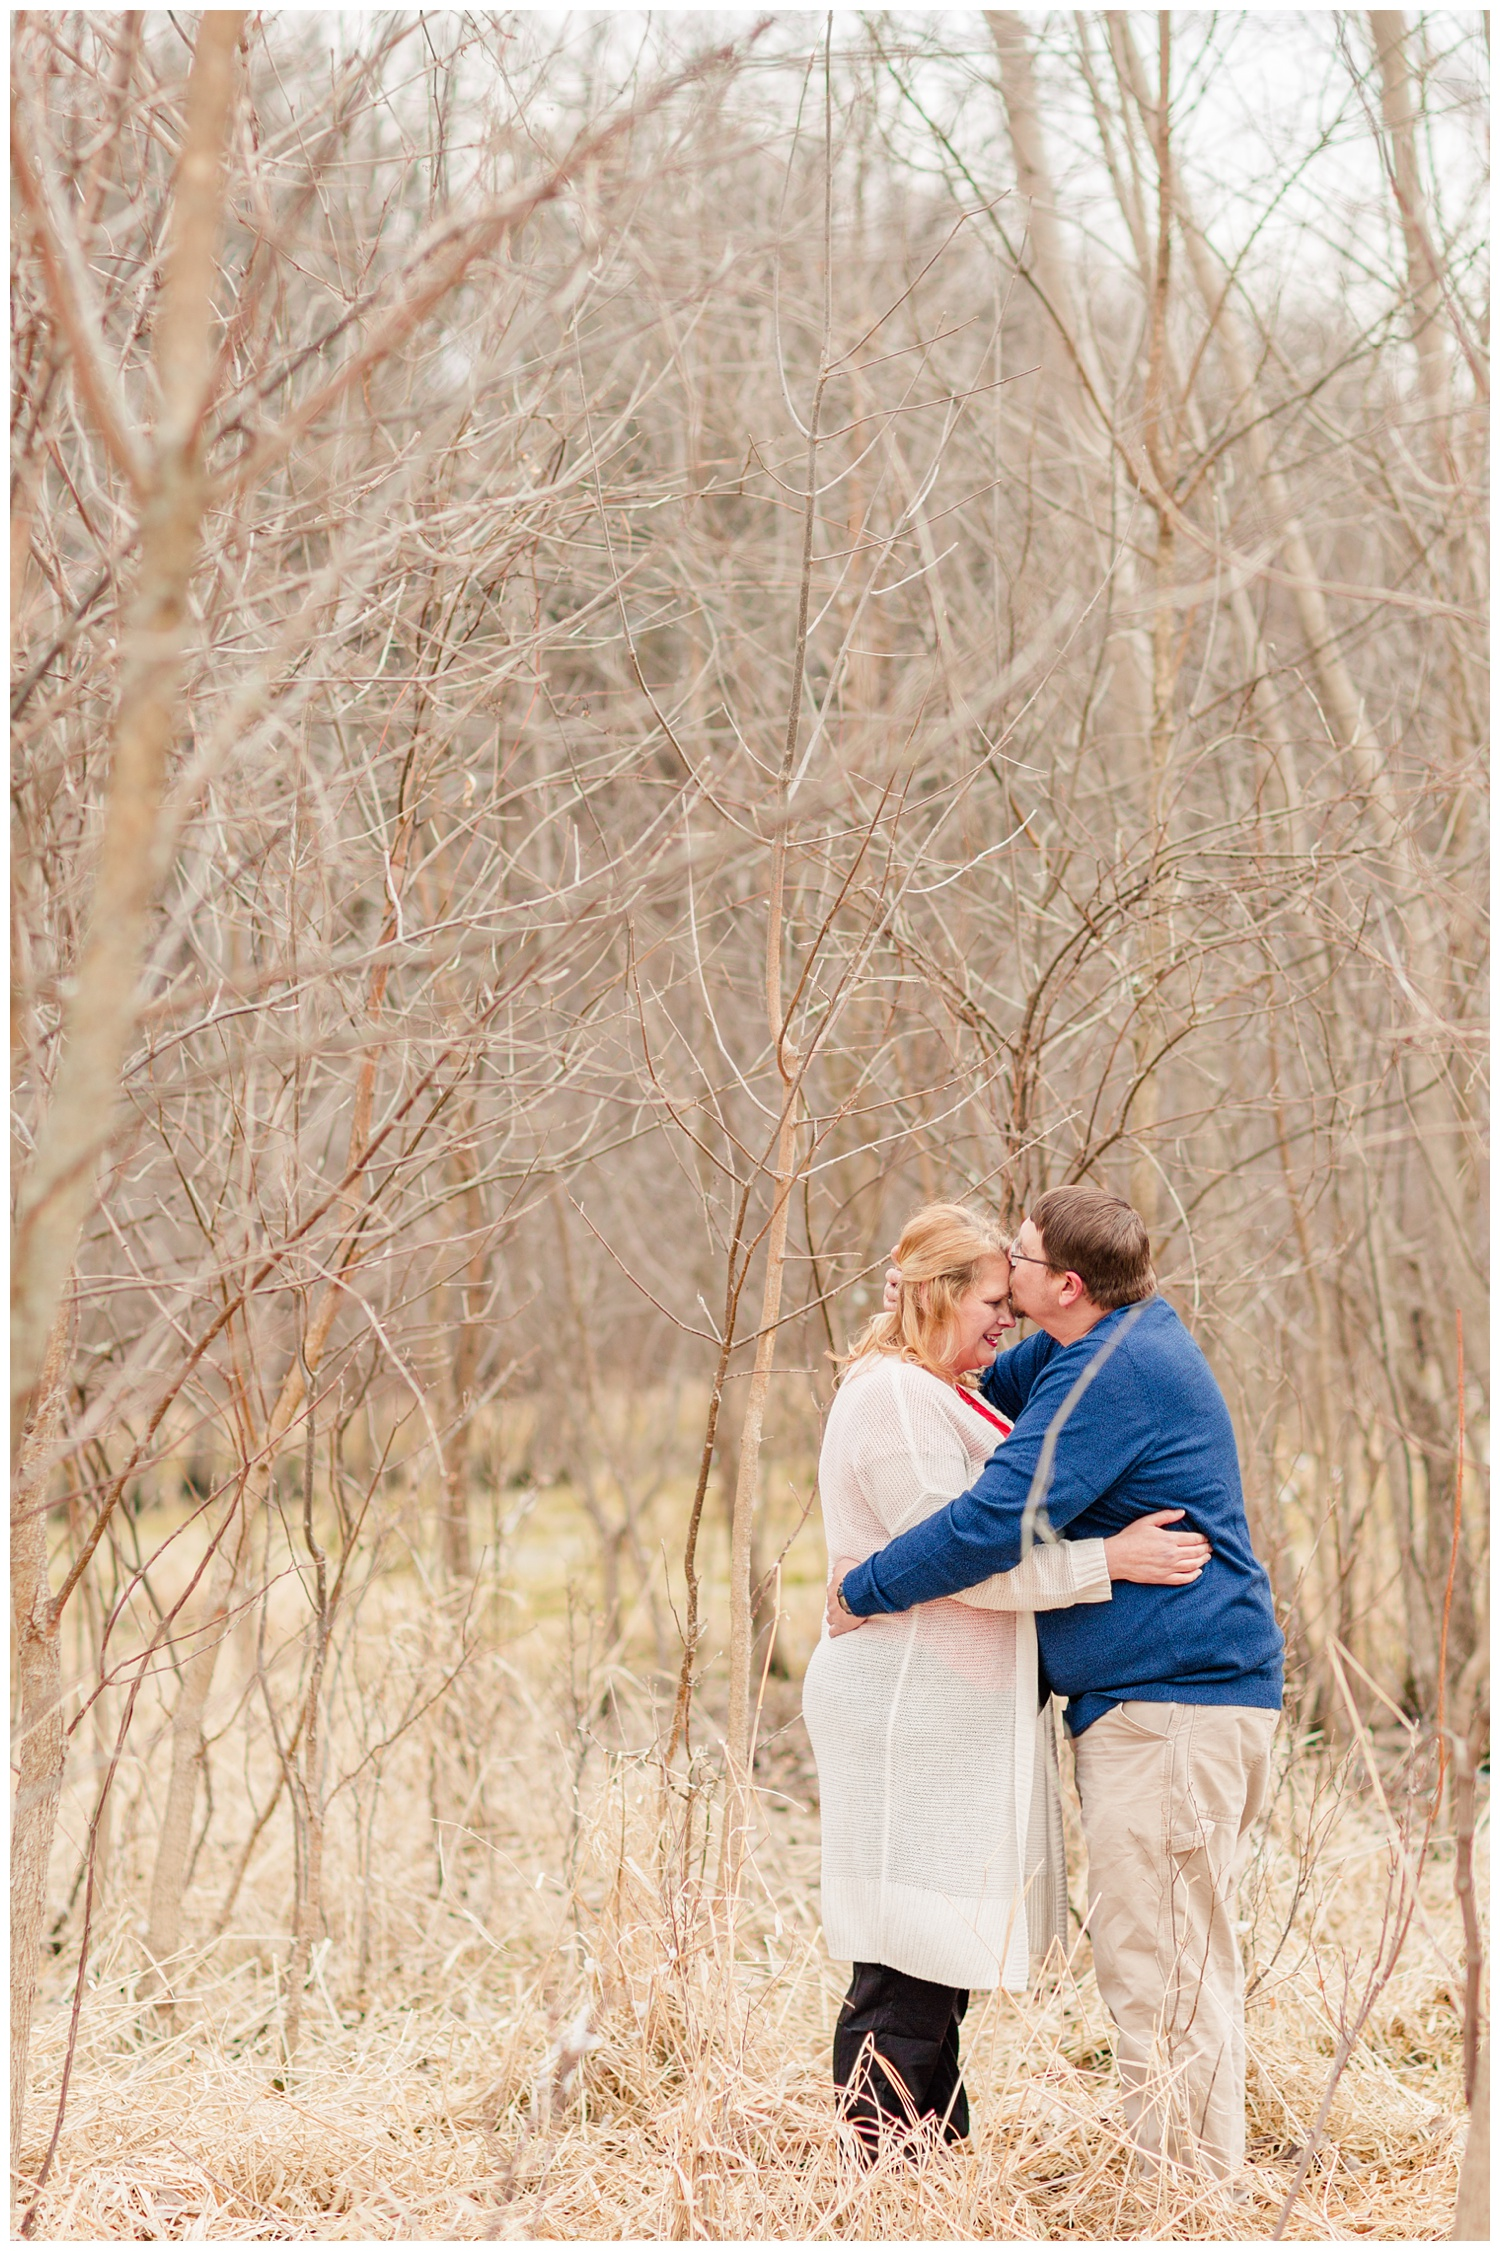 Engagement shoot in a grassy pasture in central Iowa in mid-March surrounded by trees